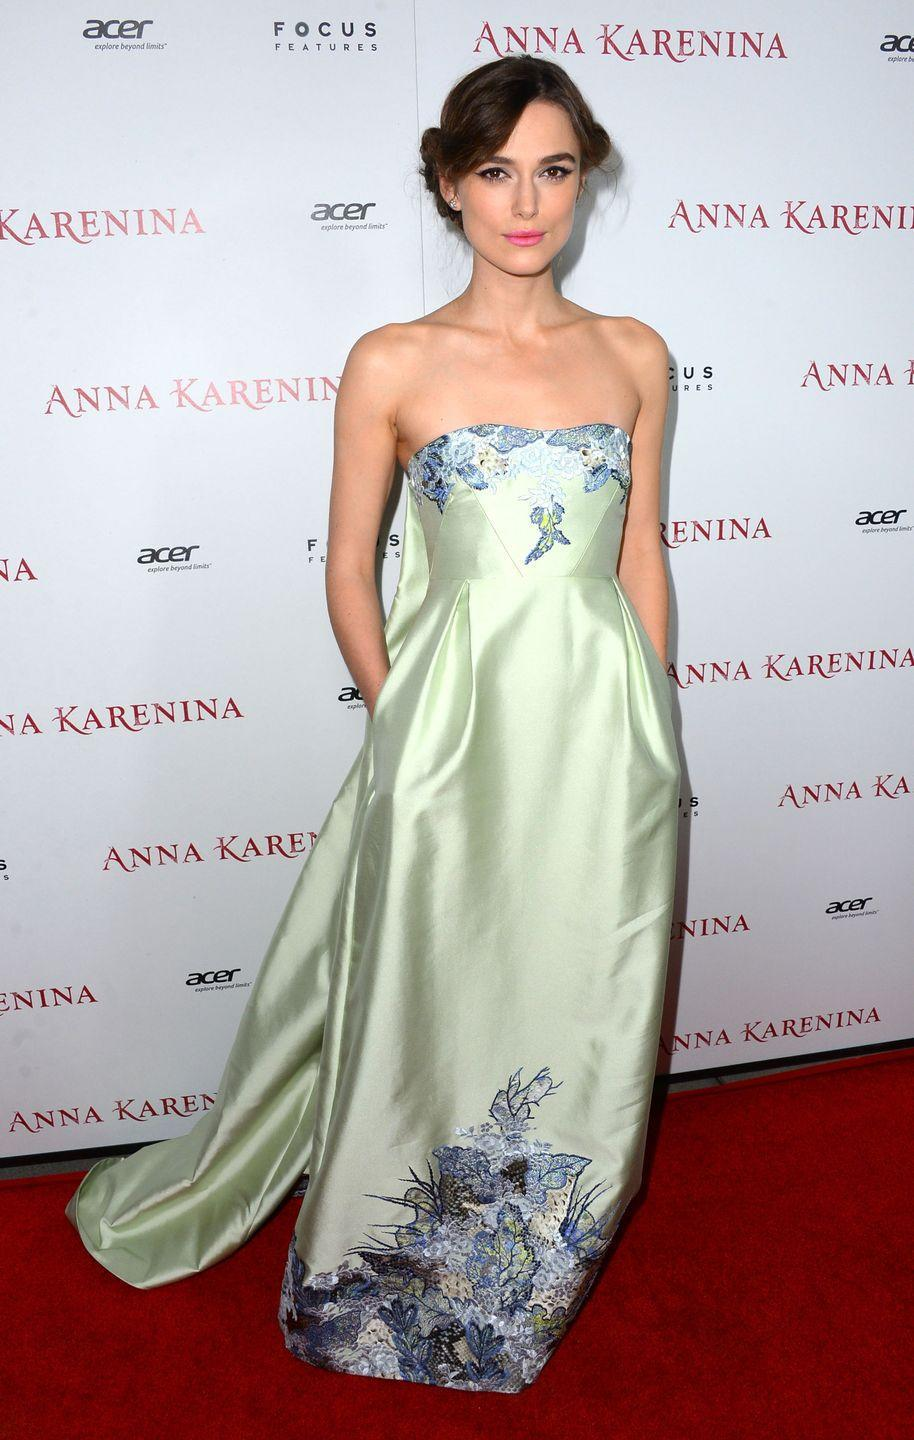 <p>Keira Knightley looked like a princess in a green strapless gown with floral embroidery at the premiere of <em>Anna Karenin</em><em>a</em> in 2012.</p>